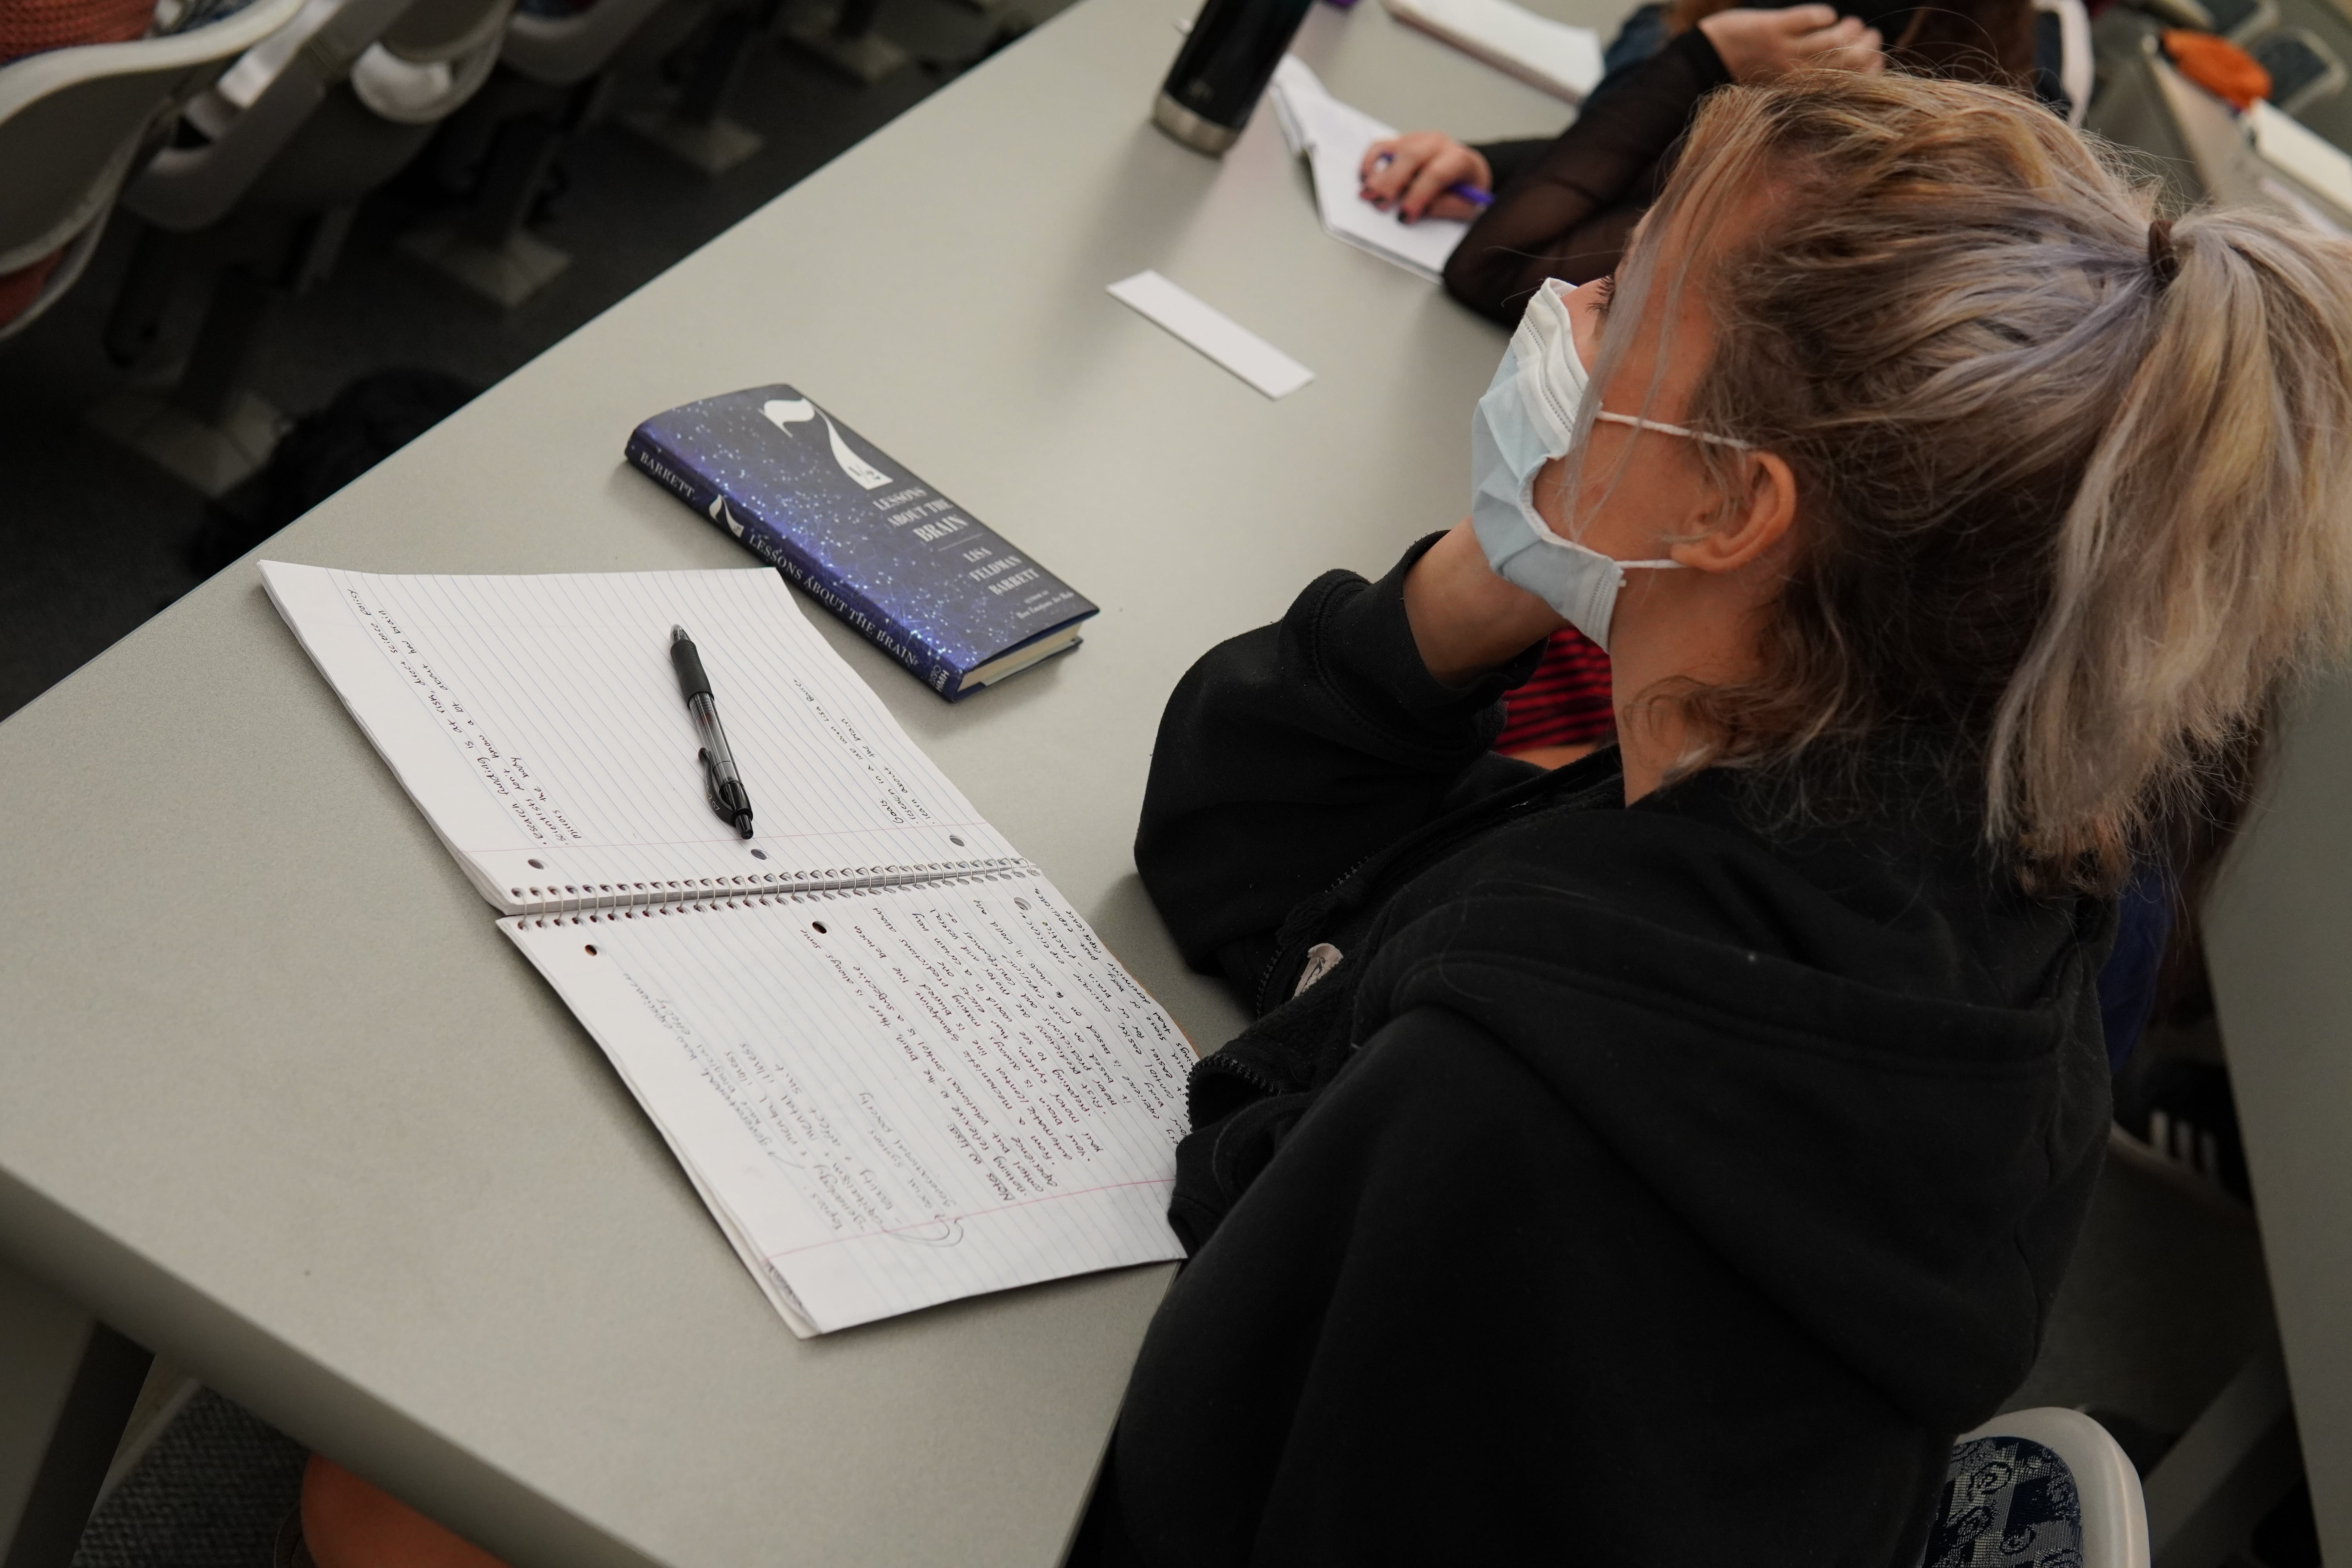 A student leans their arm on a table next to their open notebook and closed copy of